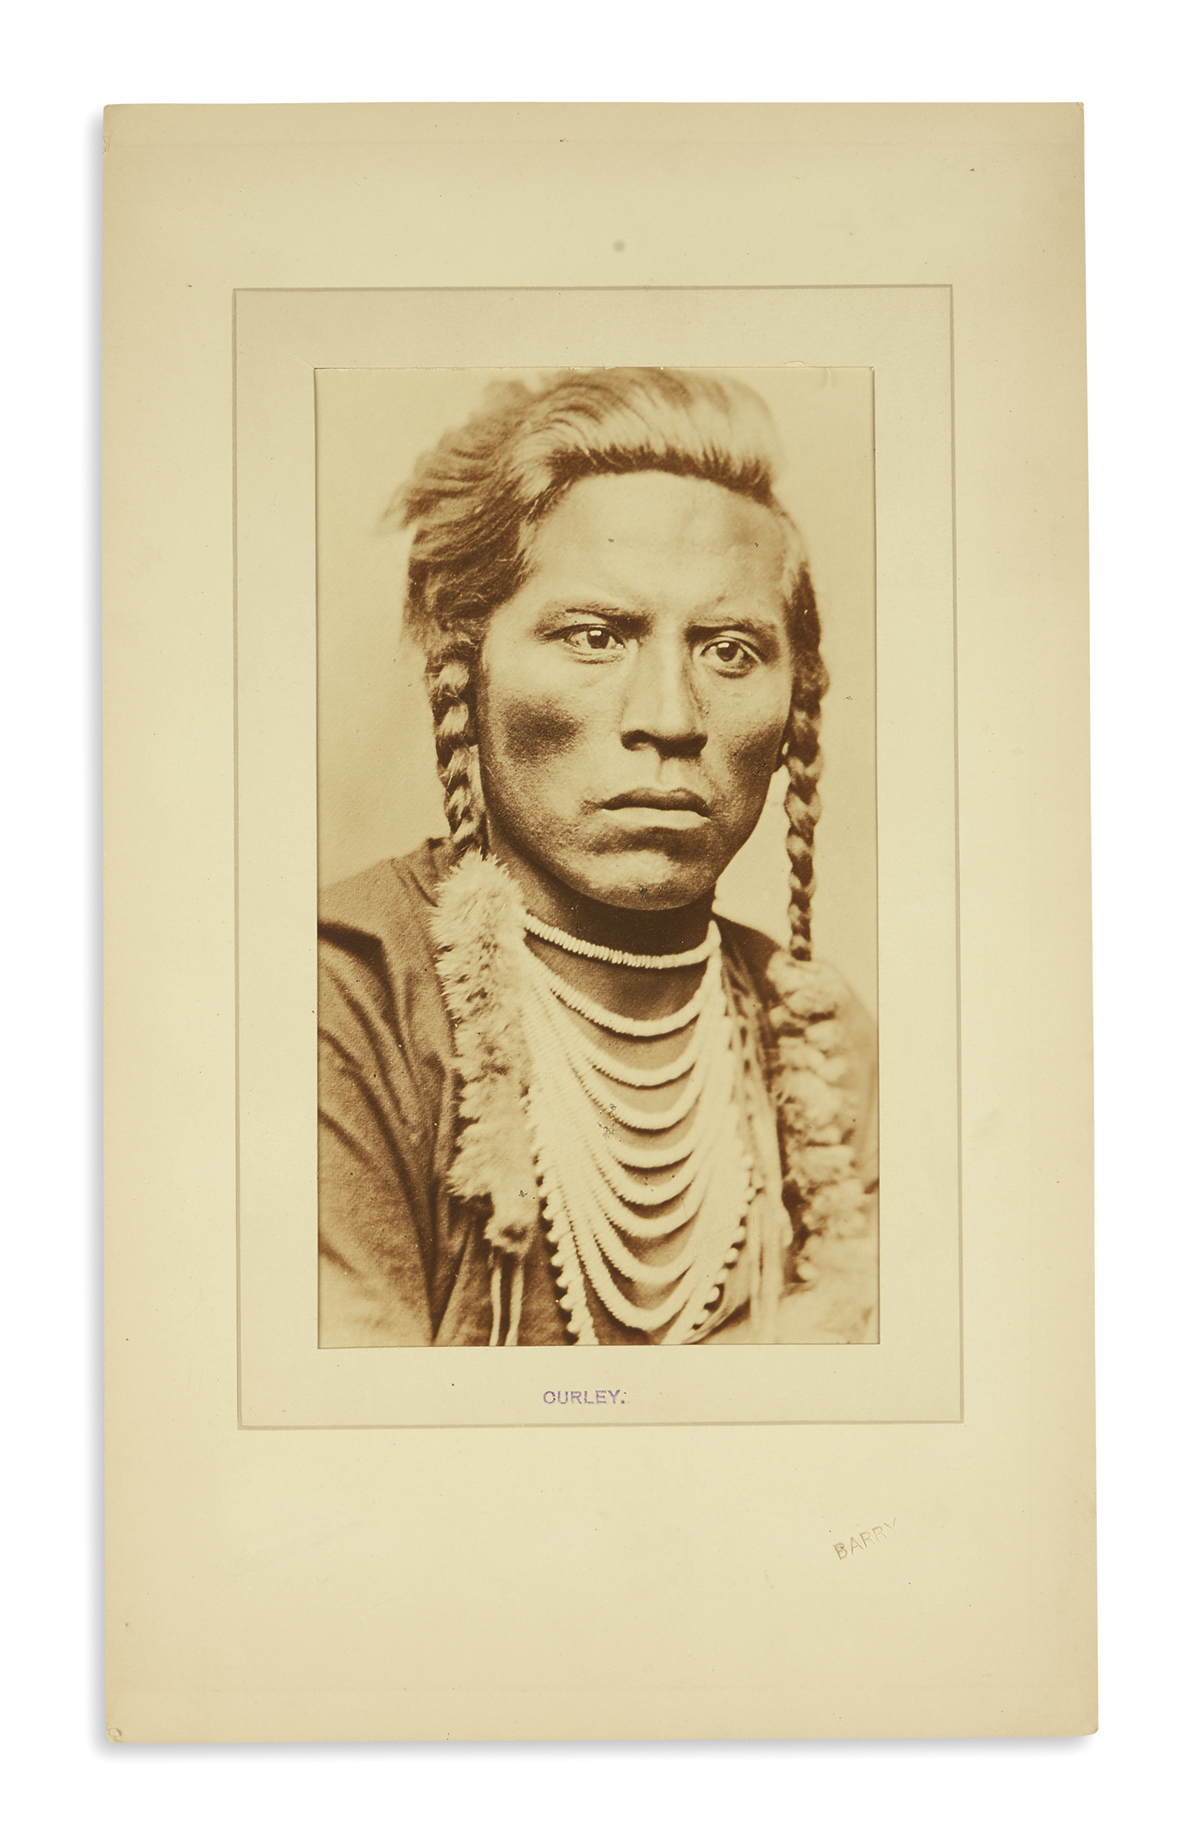 (AMERICAN-INDIANS--PHOTOGRAPHS)-Barry-David-F-Photograph-of-